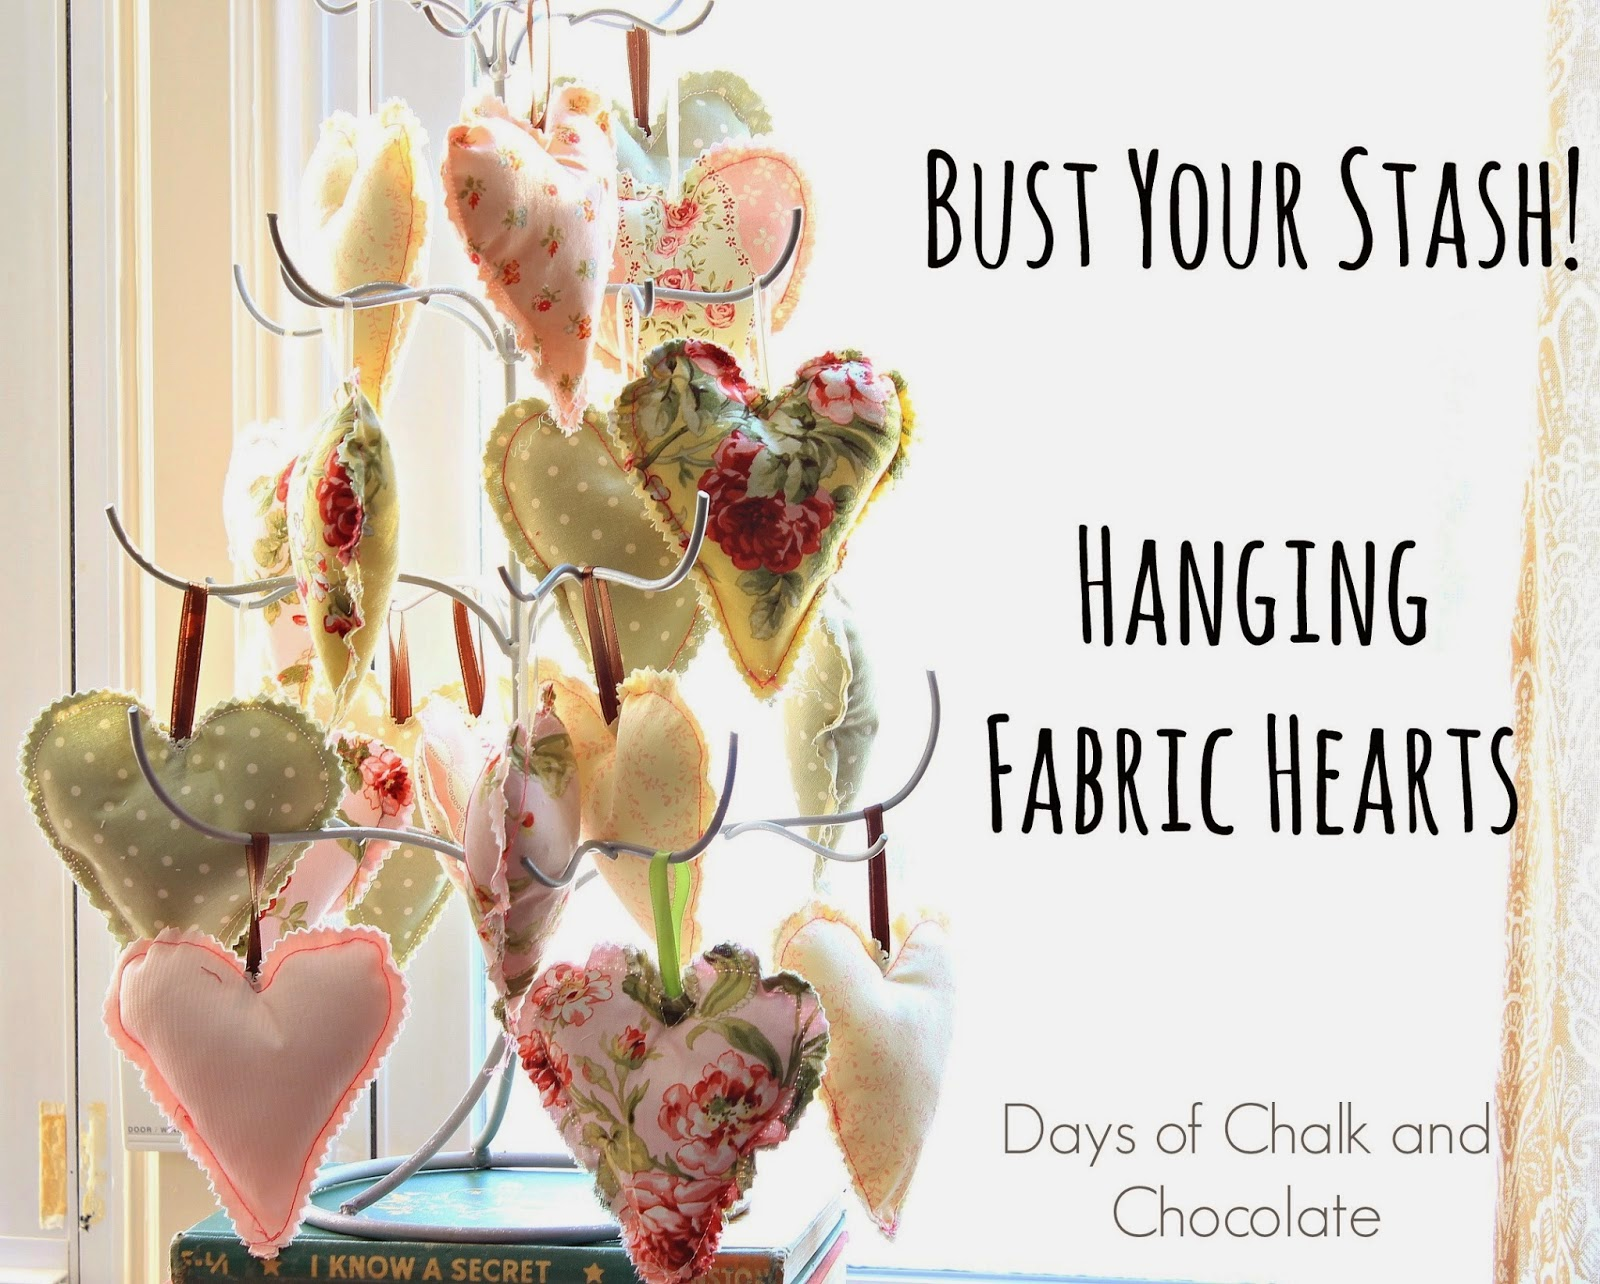 http://daysofchalkandchocolate.blogspot.com/2014/01/bust-your-stash-scrap-fabric-hearts.html